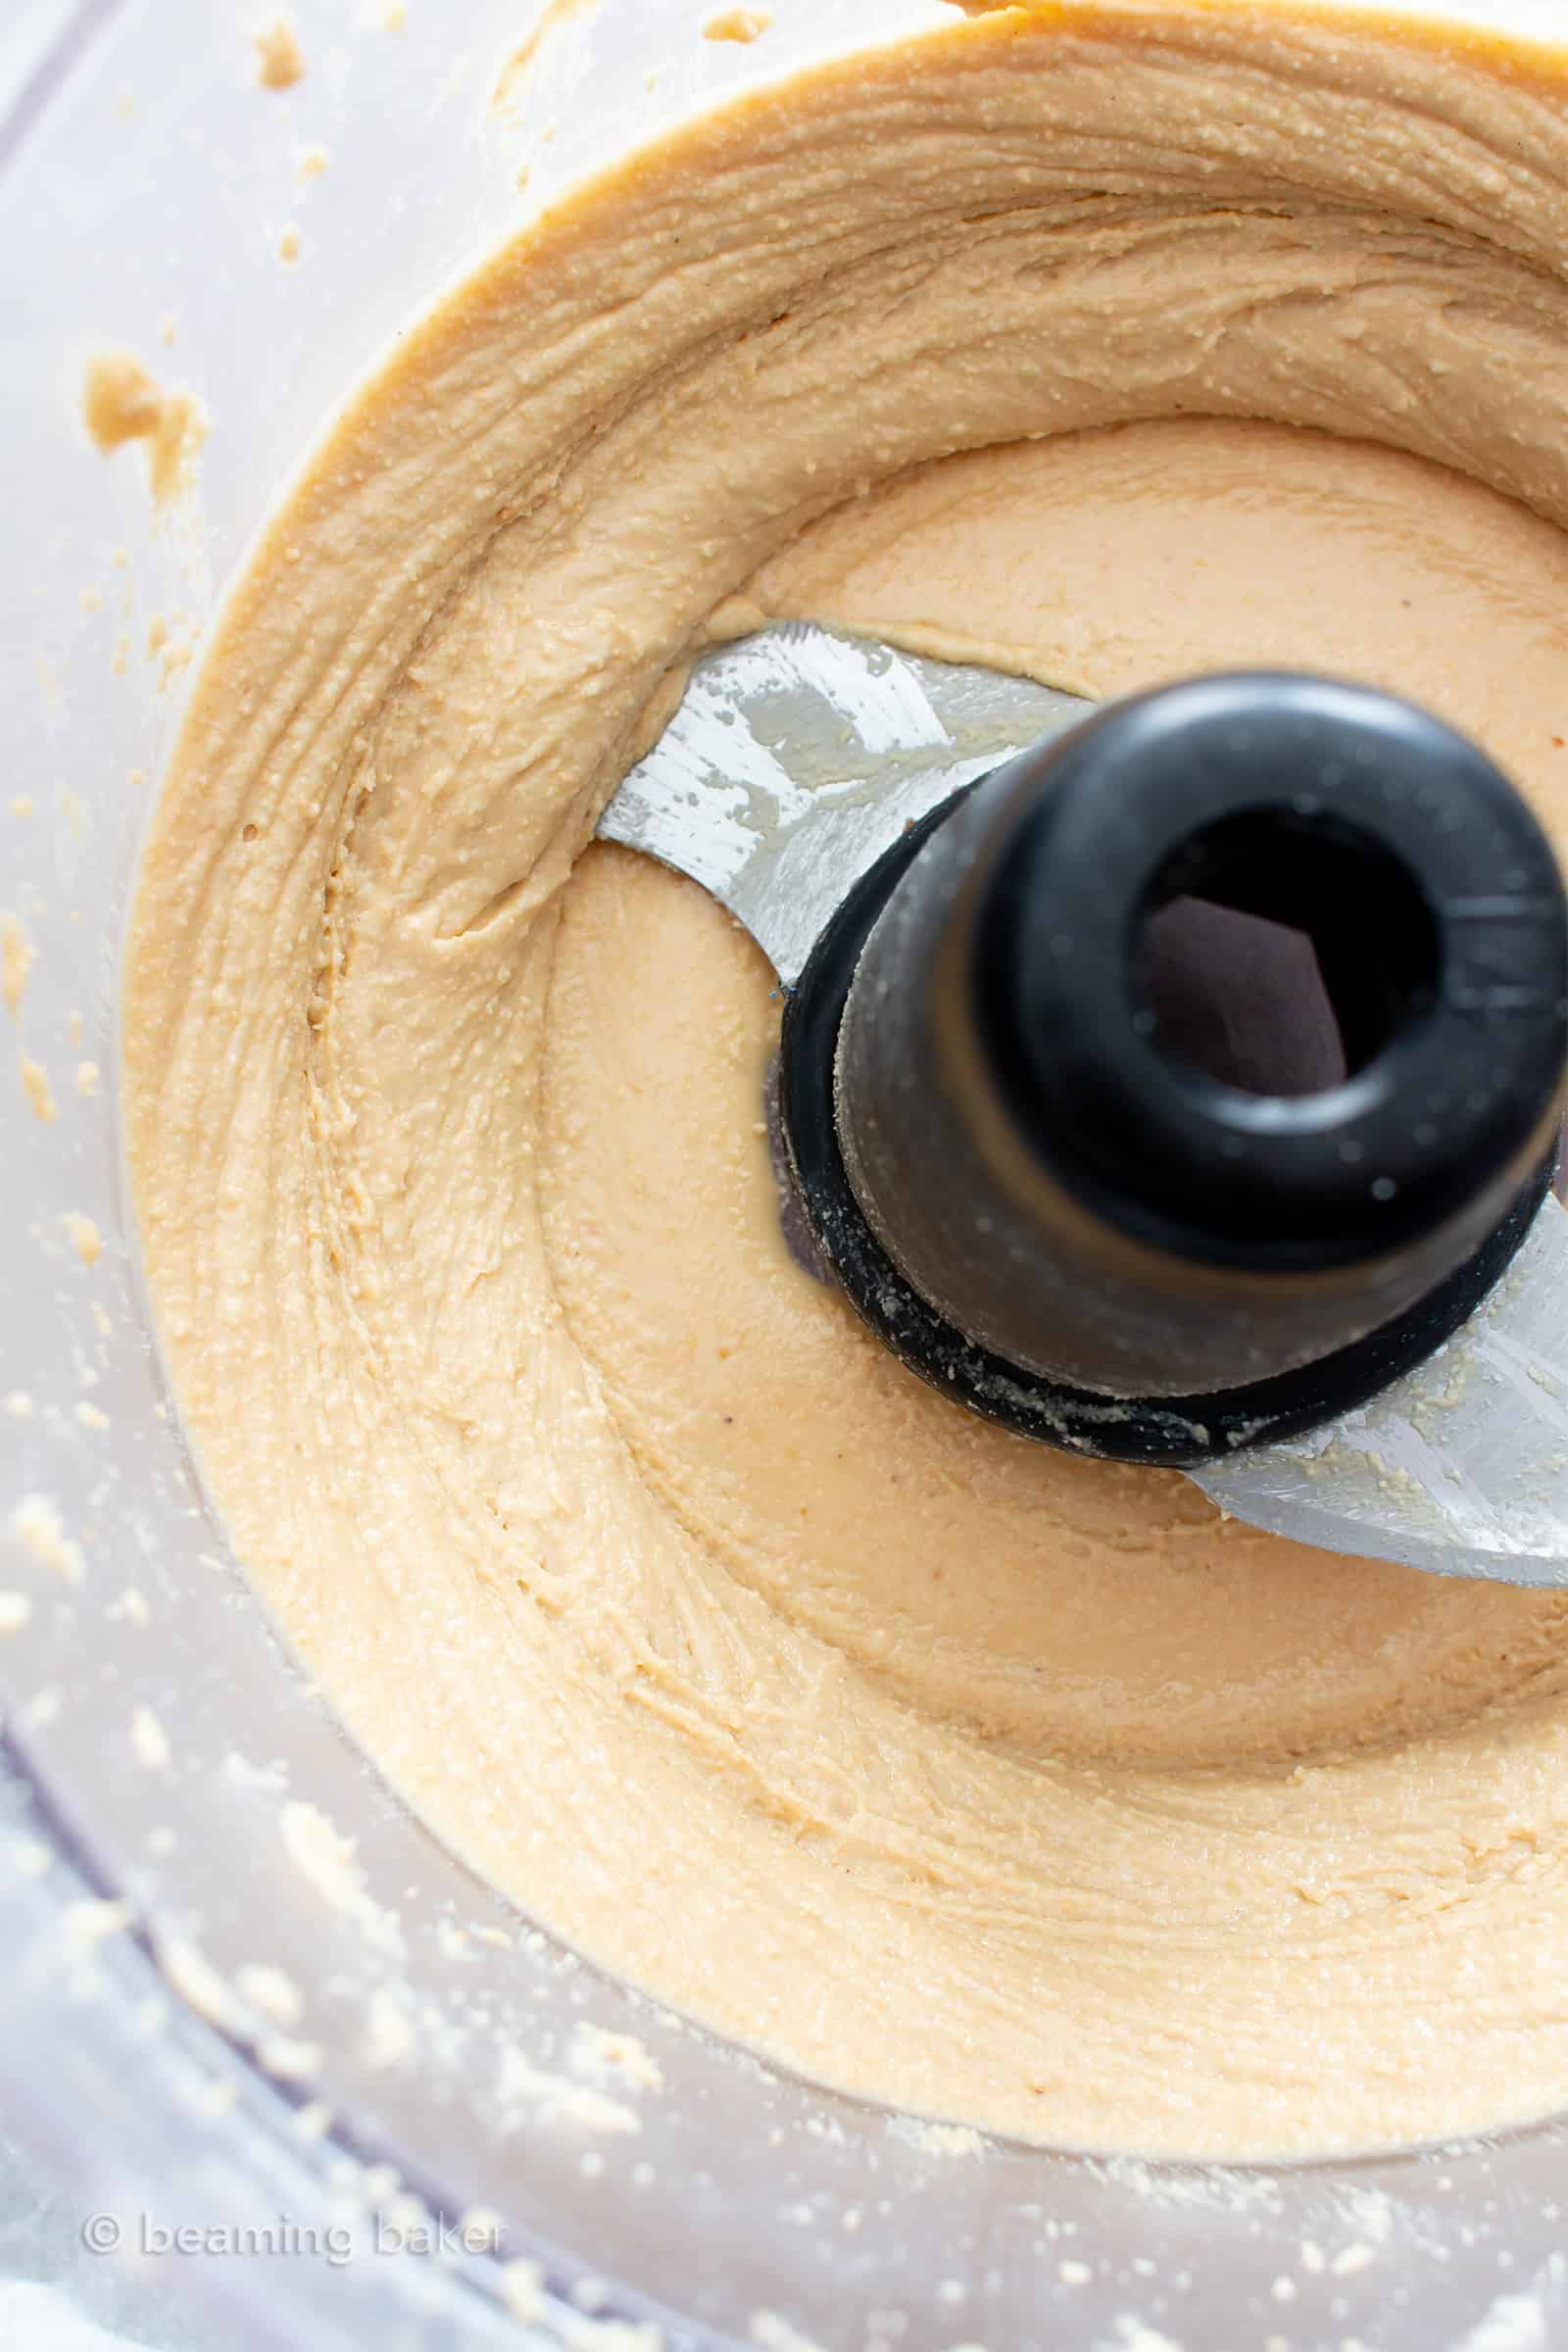 Homemade Cashew Butter: learn how to make cashew butter with just 1 ingredient and a few minutes! Step-by-step tutorial with clear, detailed pics to follow along. #CashewButter #CashewNutButter #Homemade #Cashews | Recipe at BeamingBaker.com